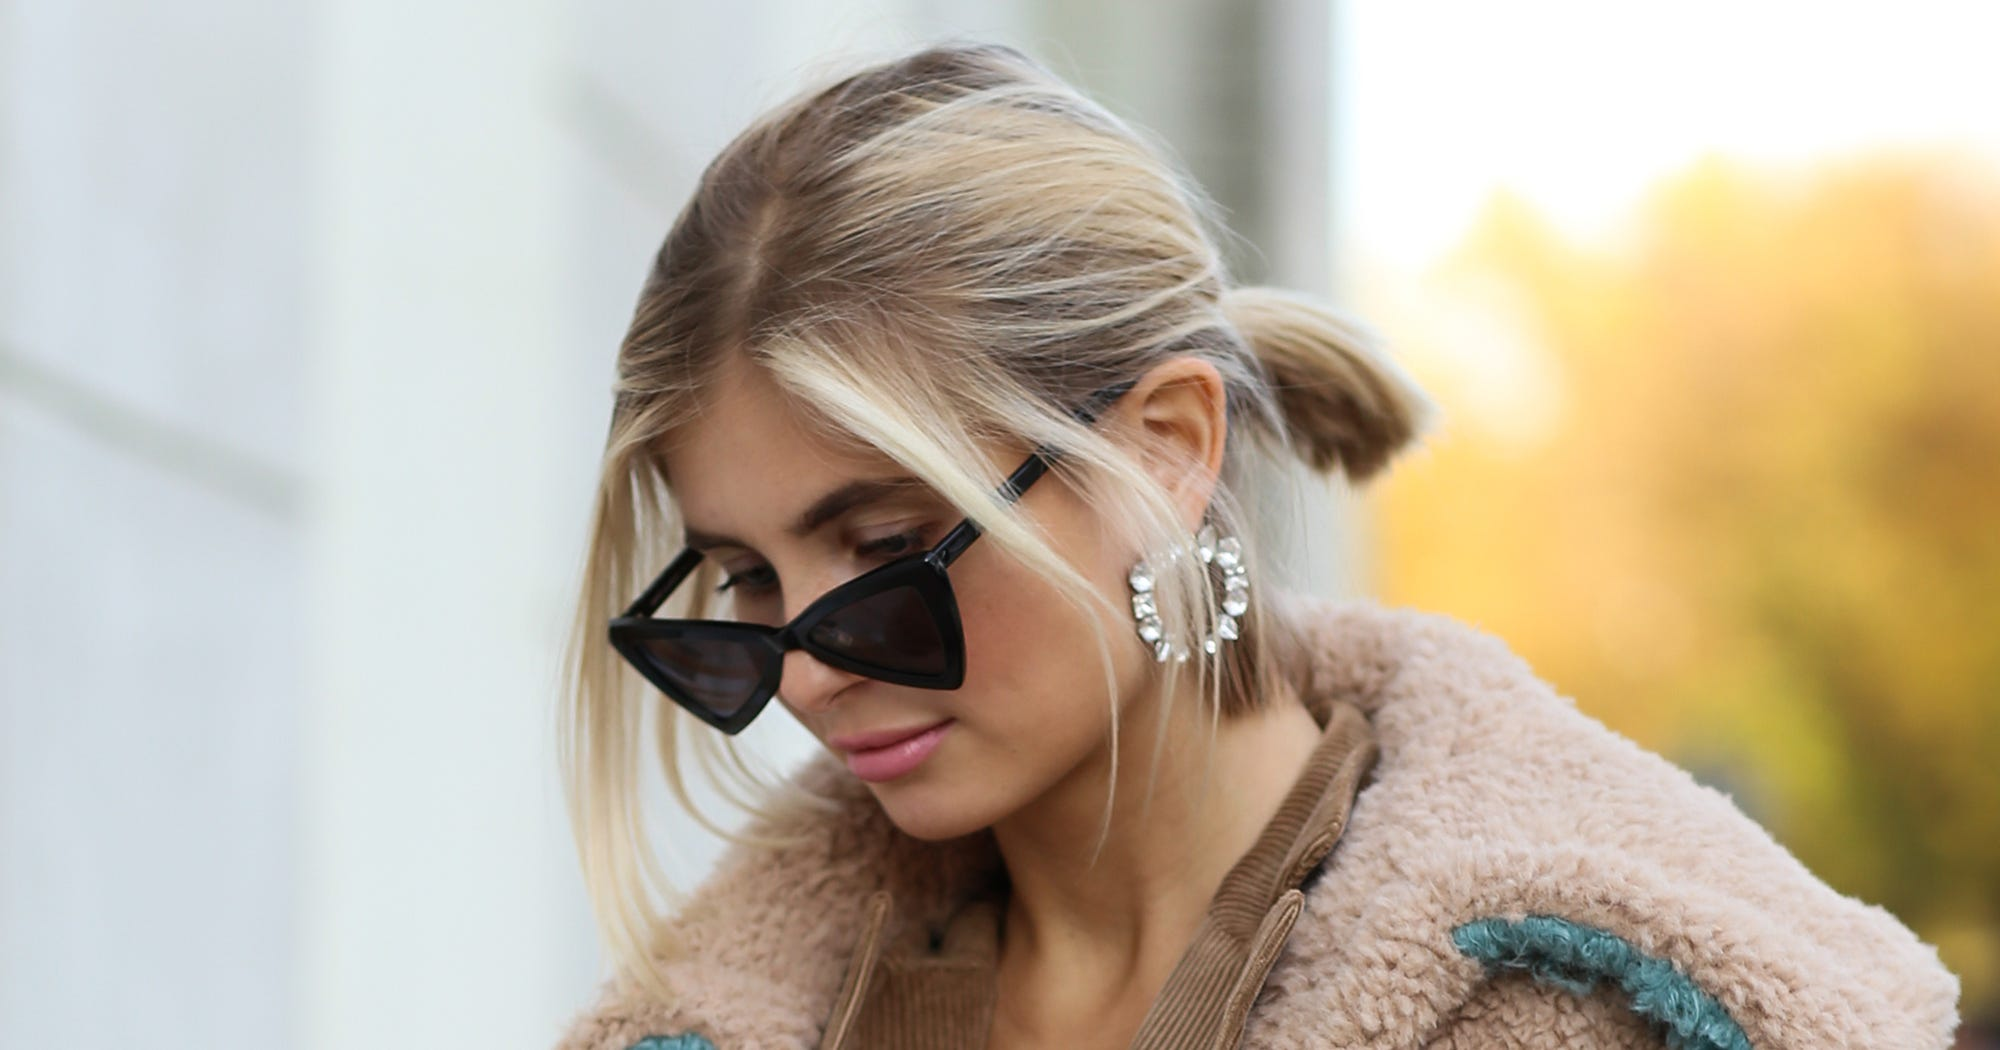 15 Chic & Short Hairstyles To Inspire Your 2019 Chop